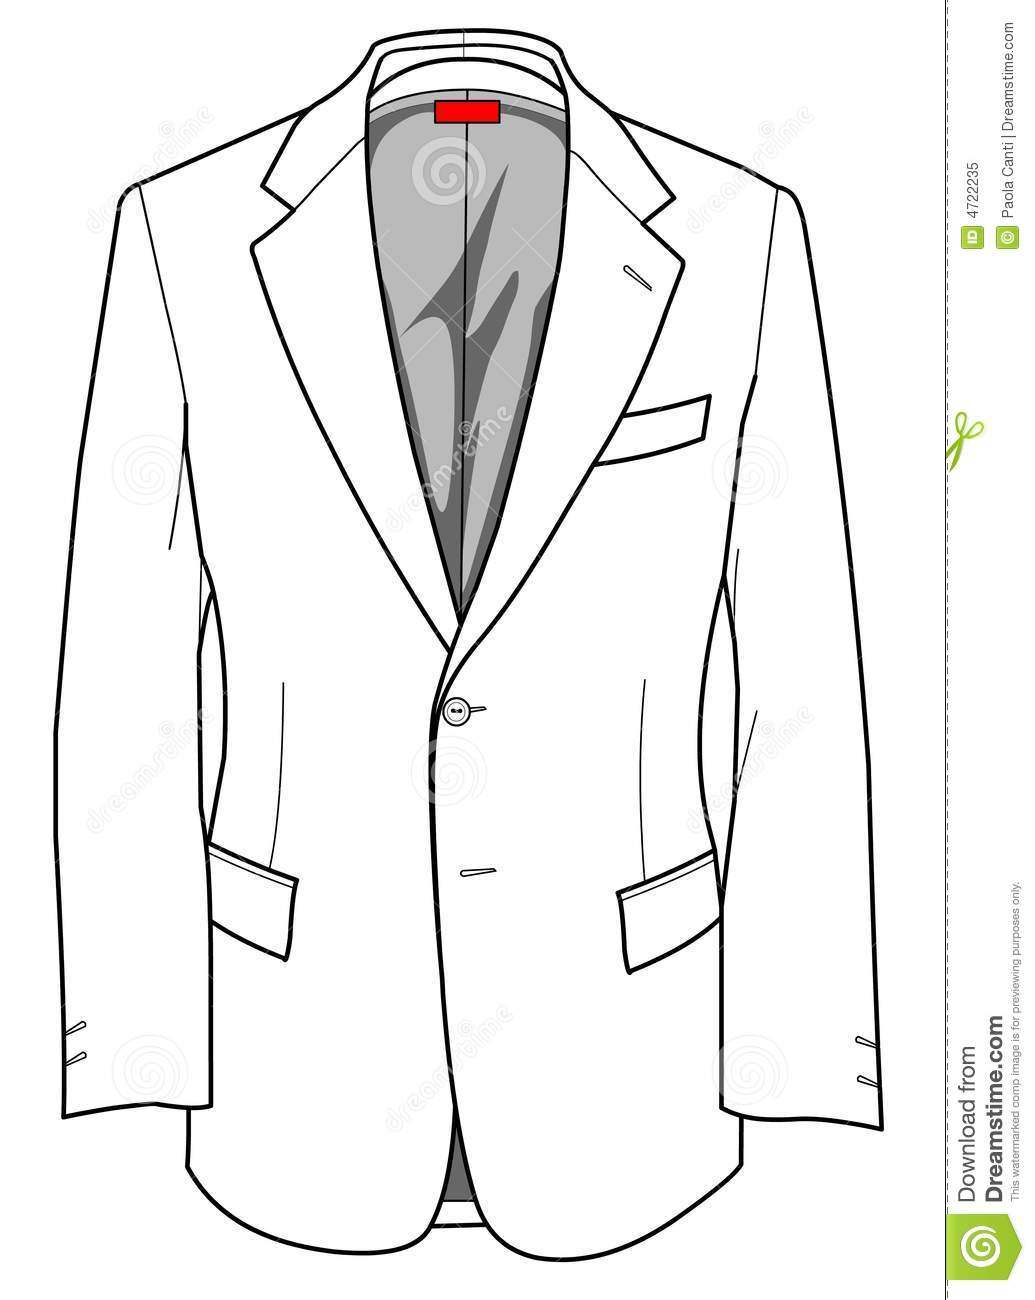 Suit clipart black and white